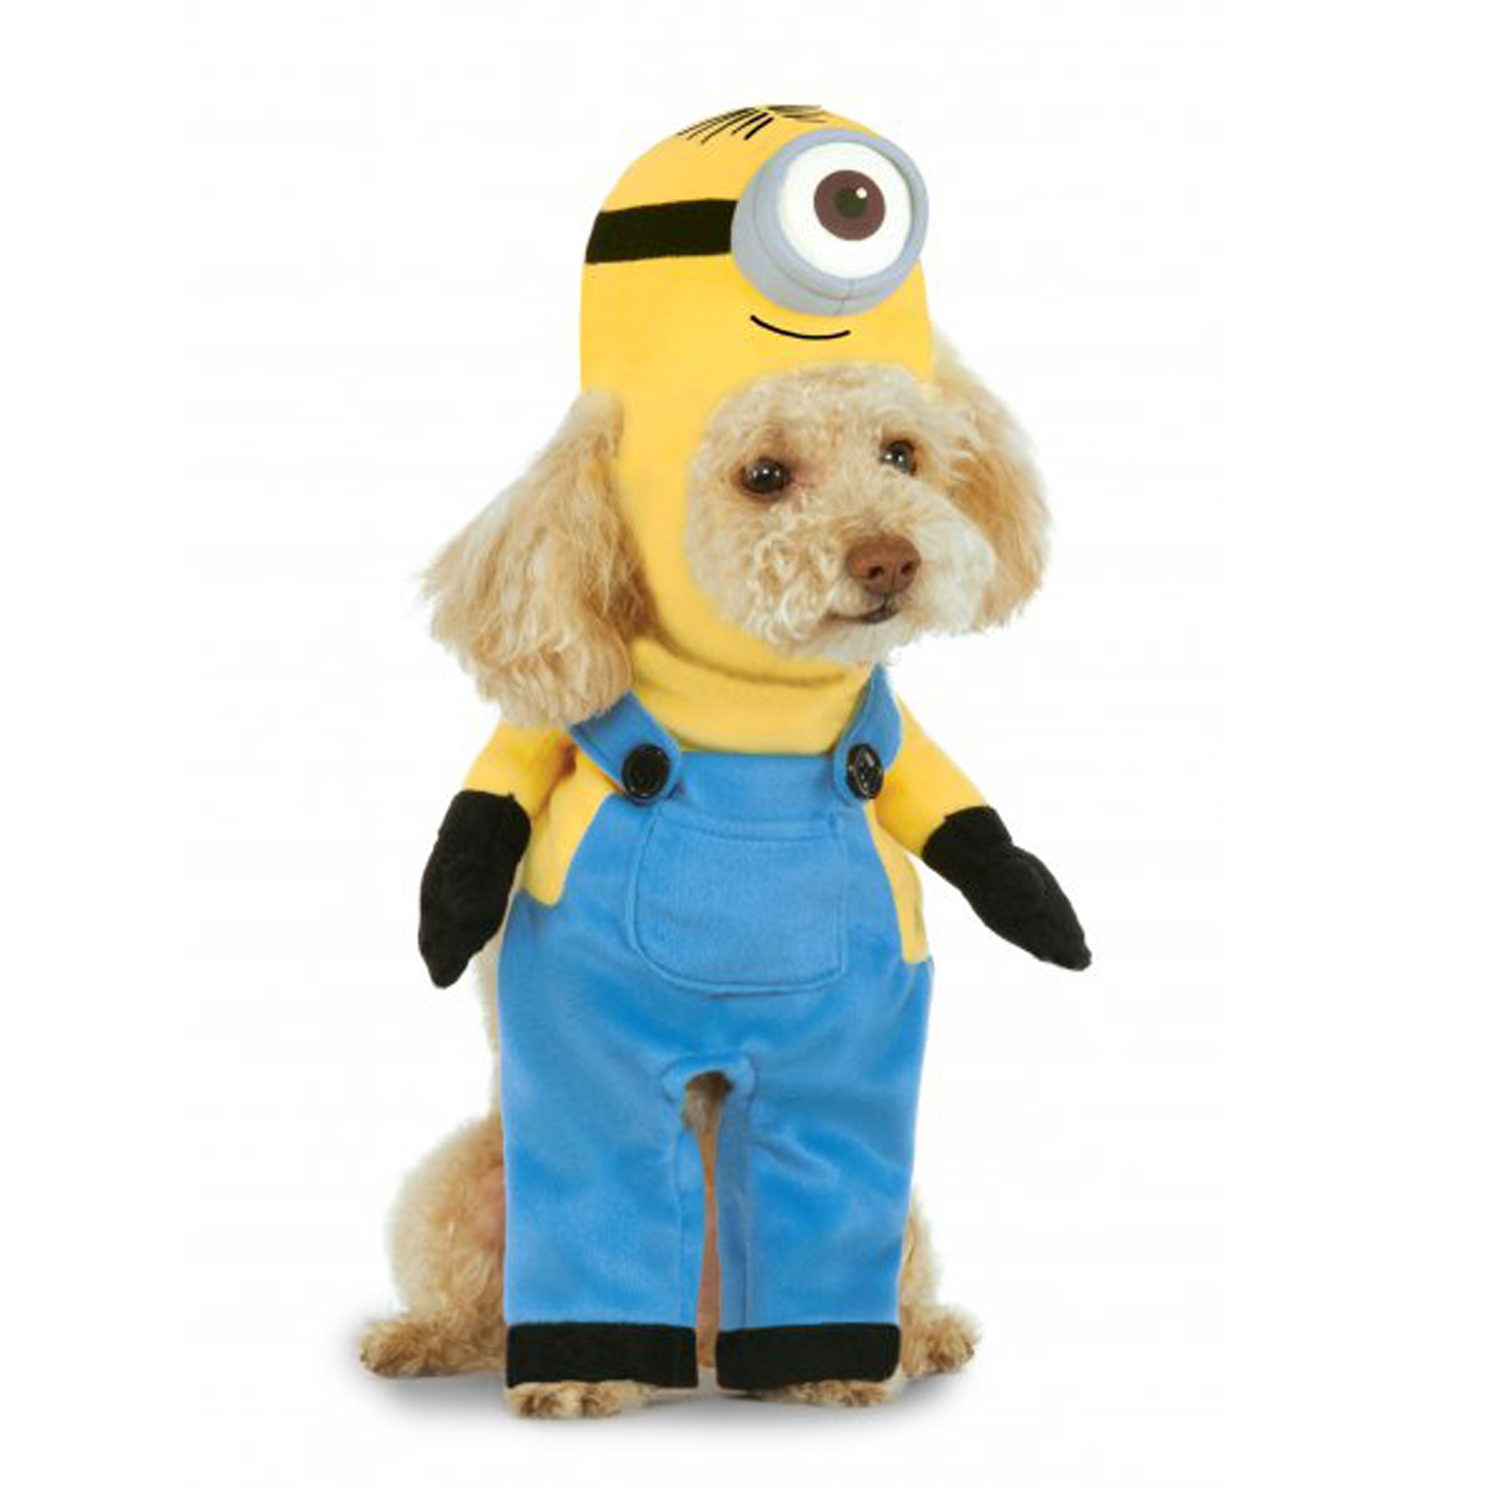 Walking Minion Dog Costume - Stuart  sc 1 st  BaxterBoo & TV and Movie Dog Costumes | BaxterBoo